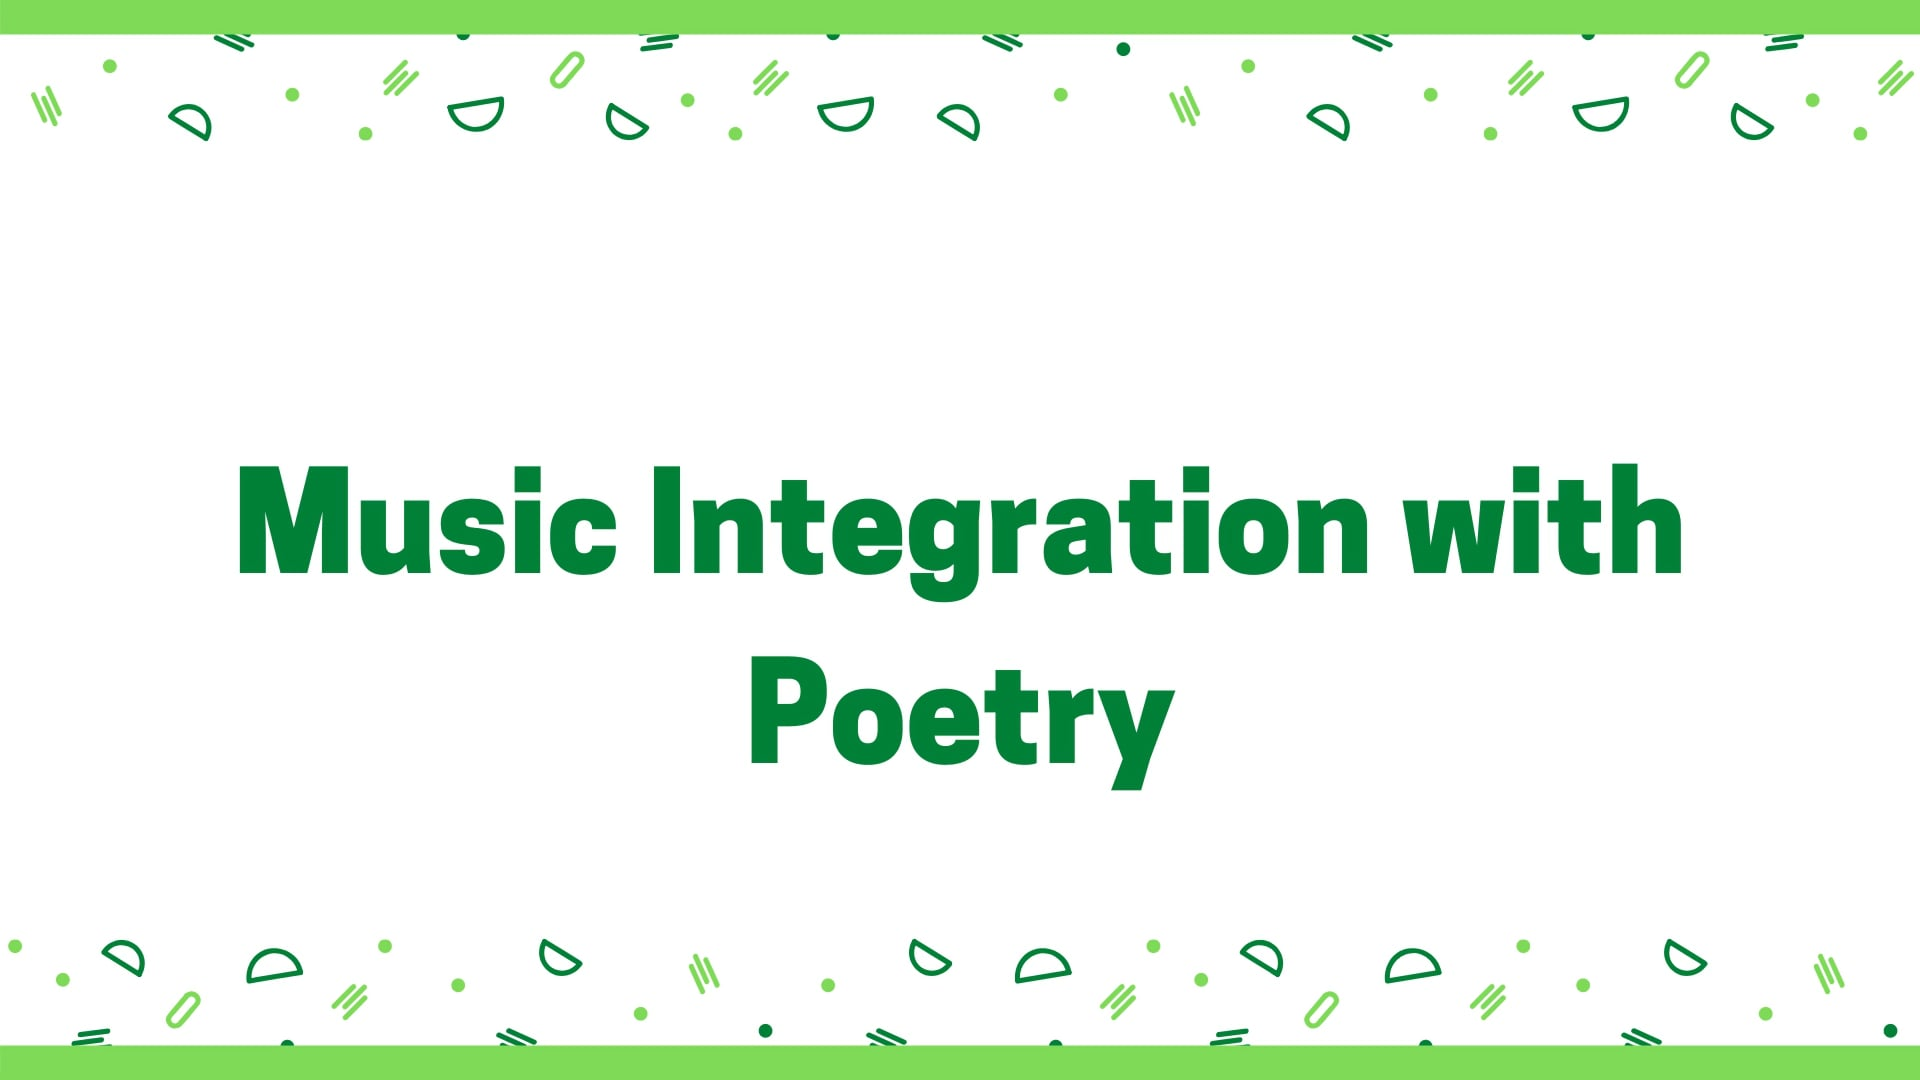 New Digital Ideas: Music Integration with Poetry